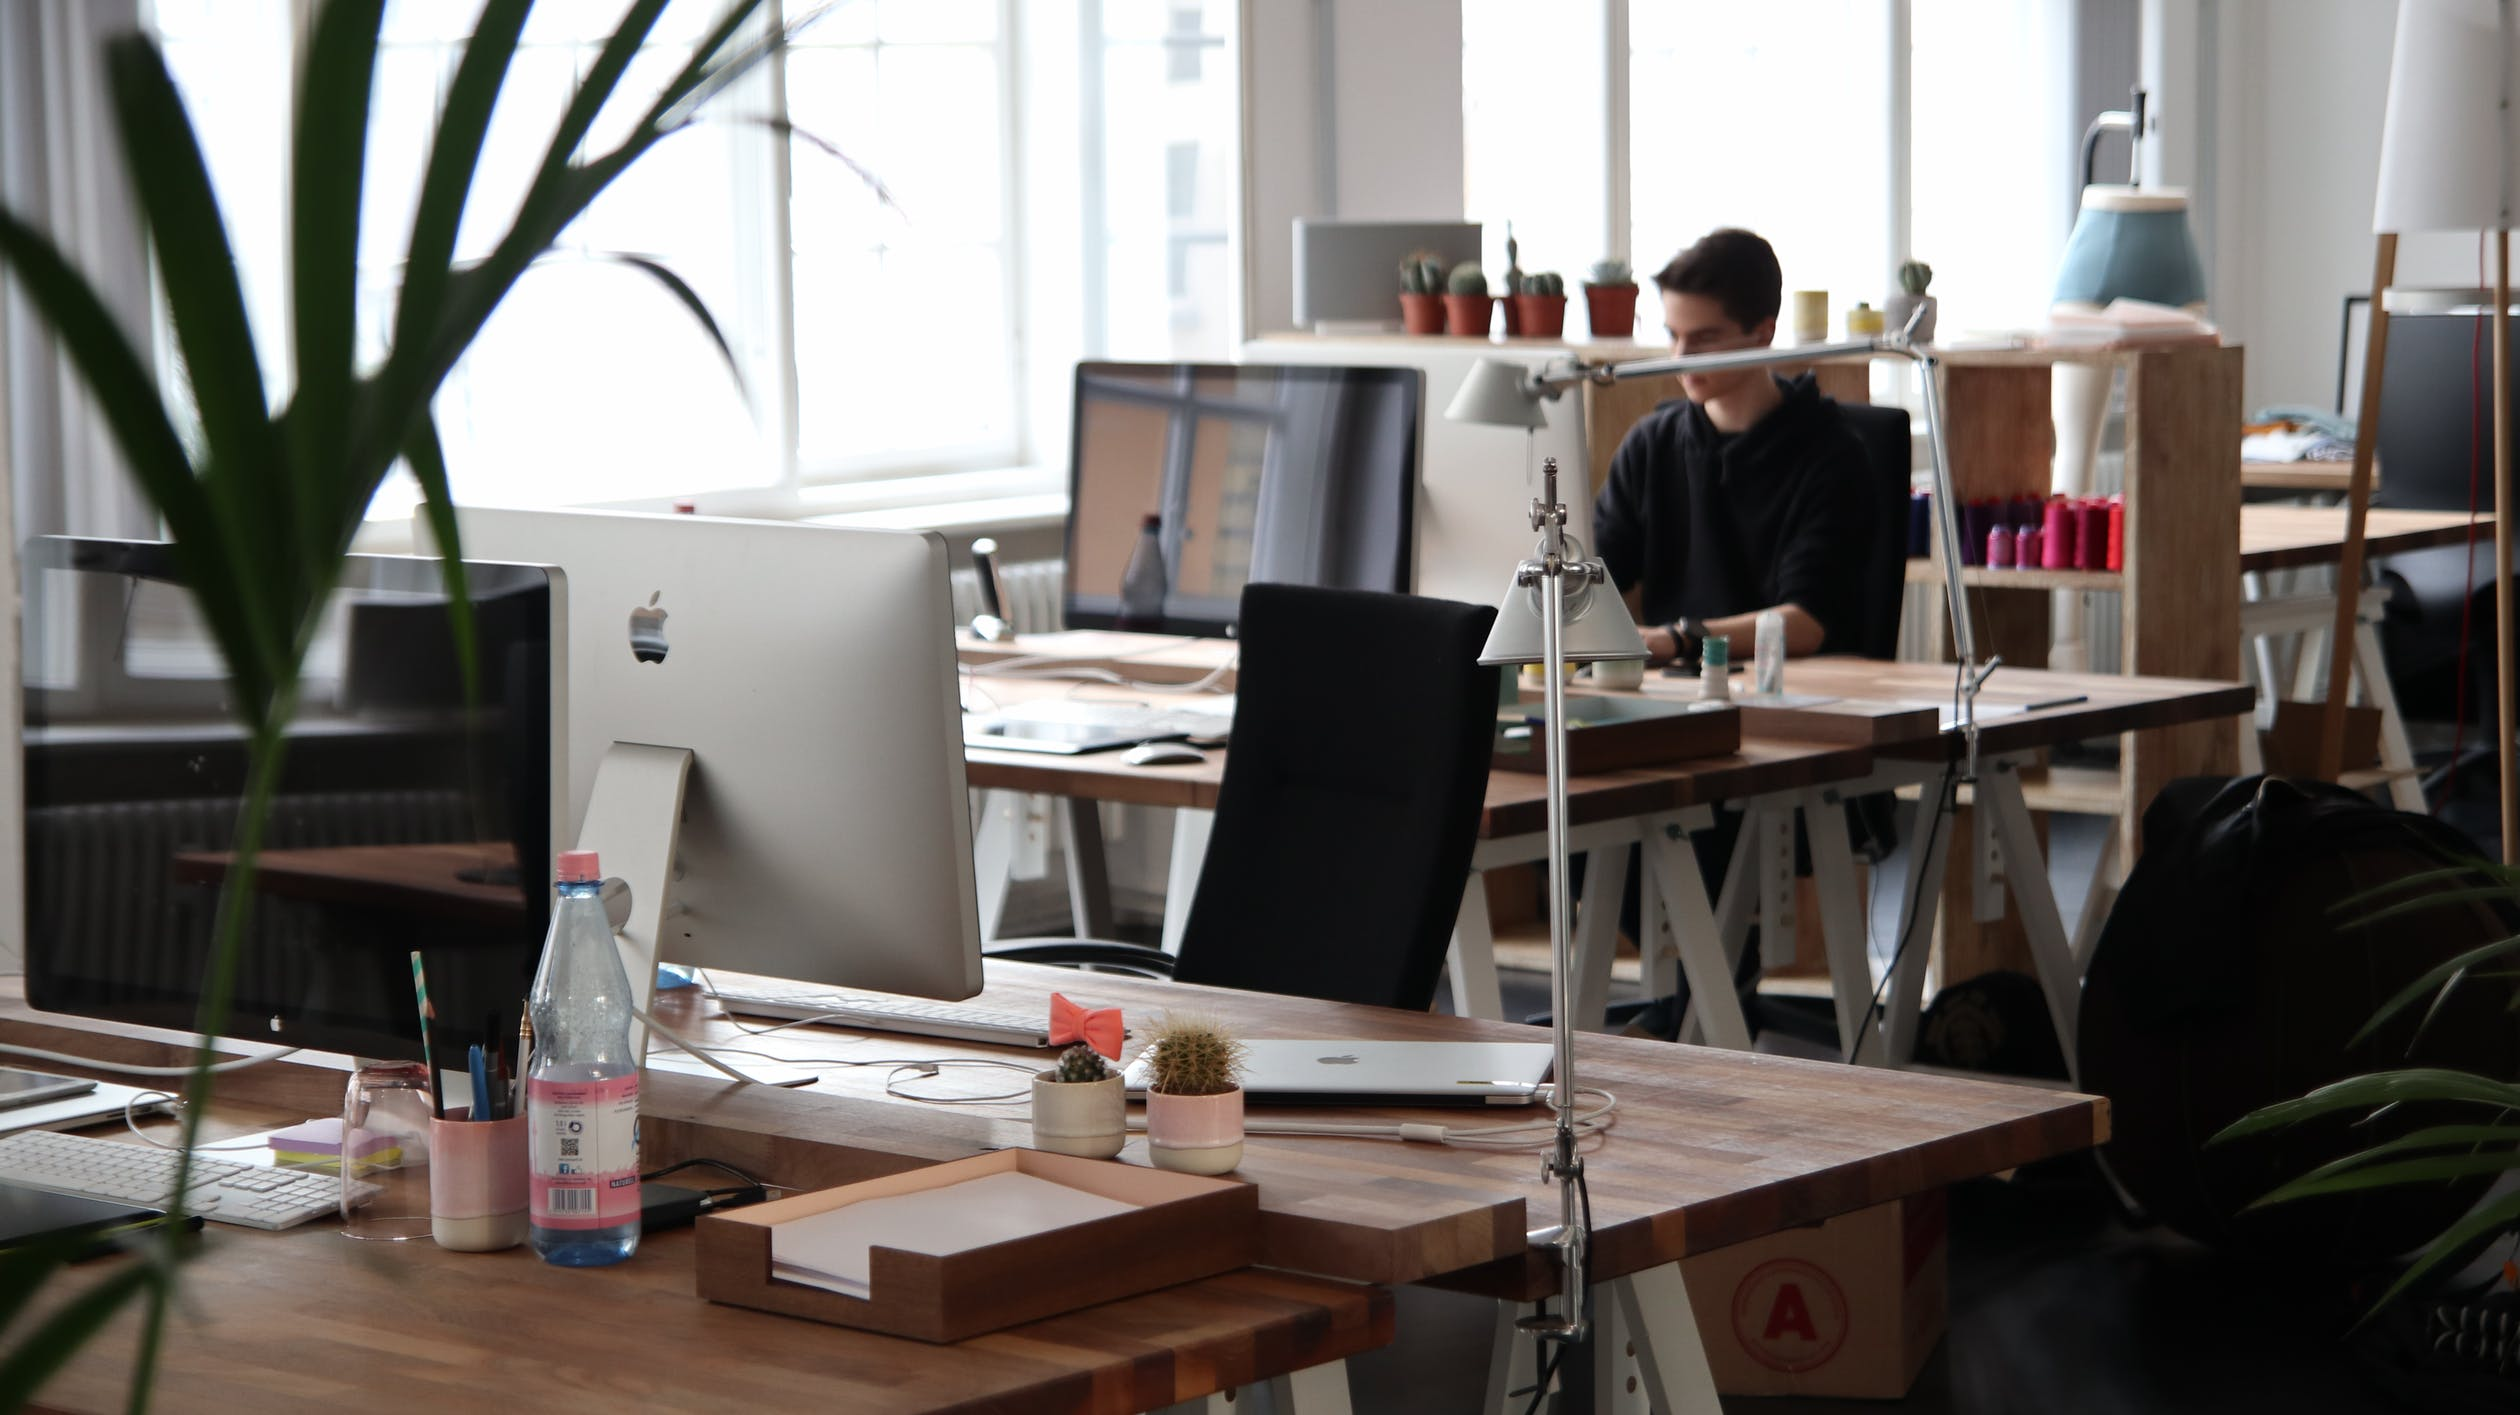 4 Tips for Cleanliness in the Workplace and How to Not Bring Germs Home